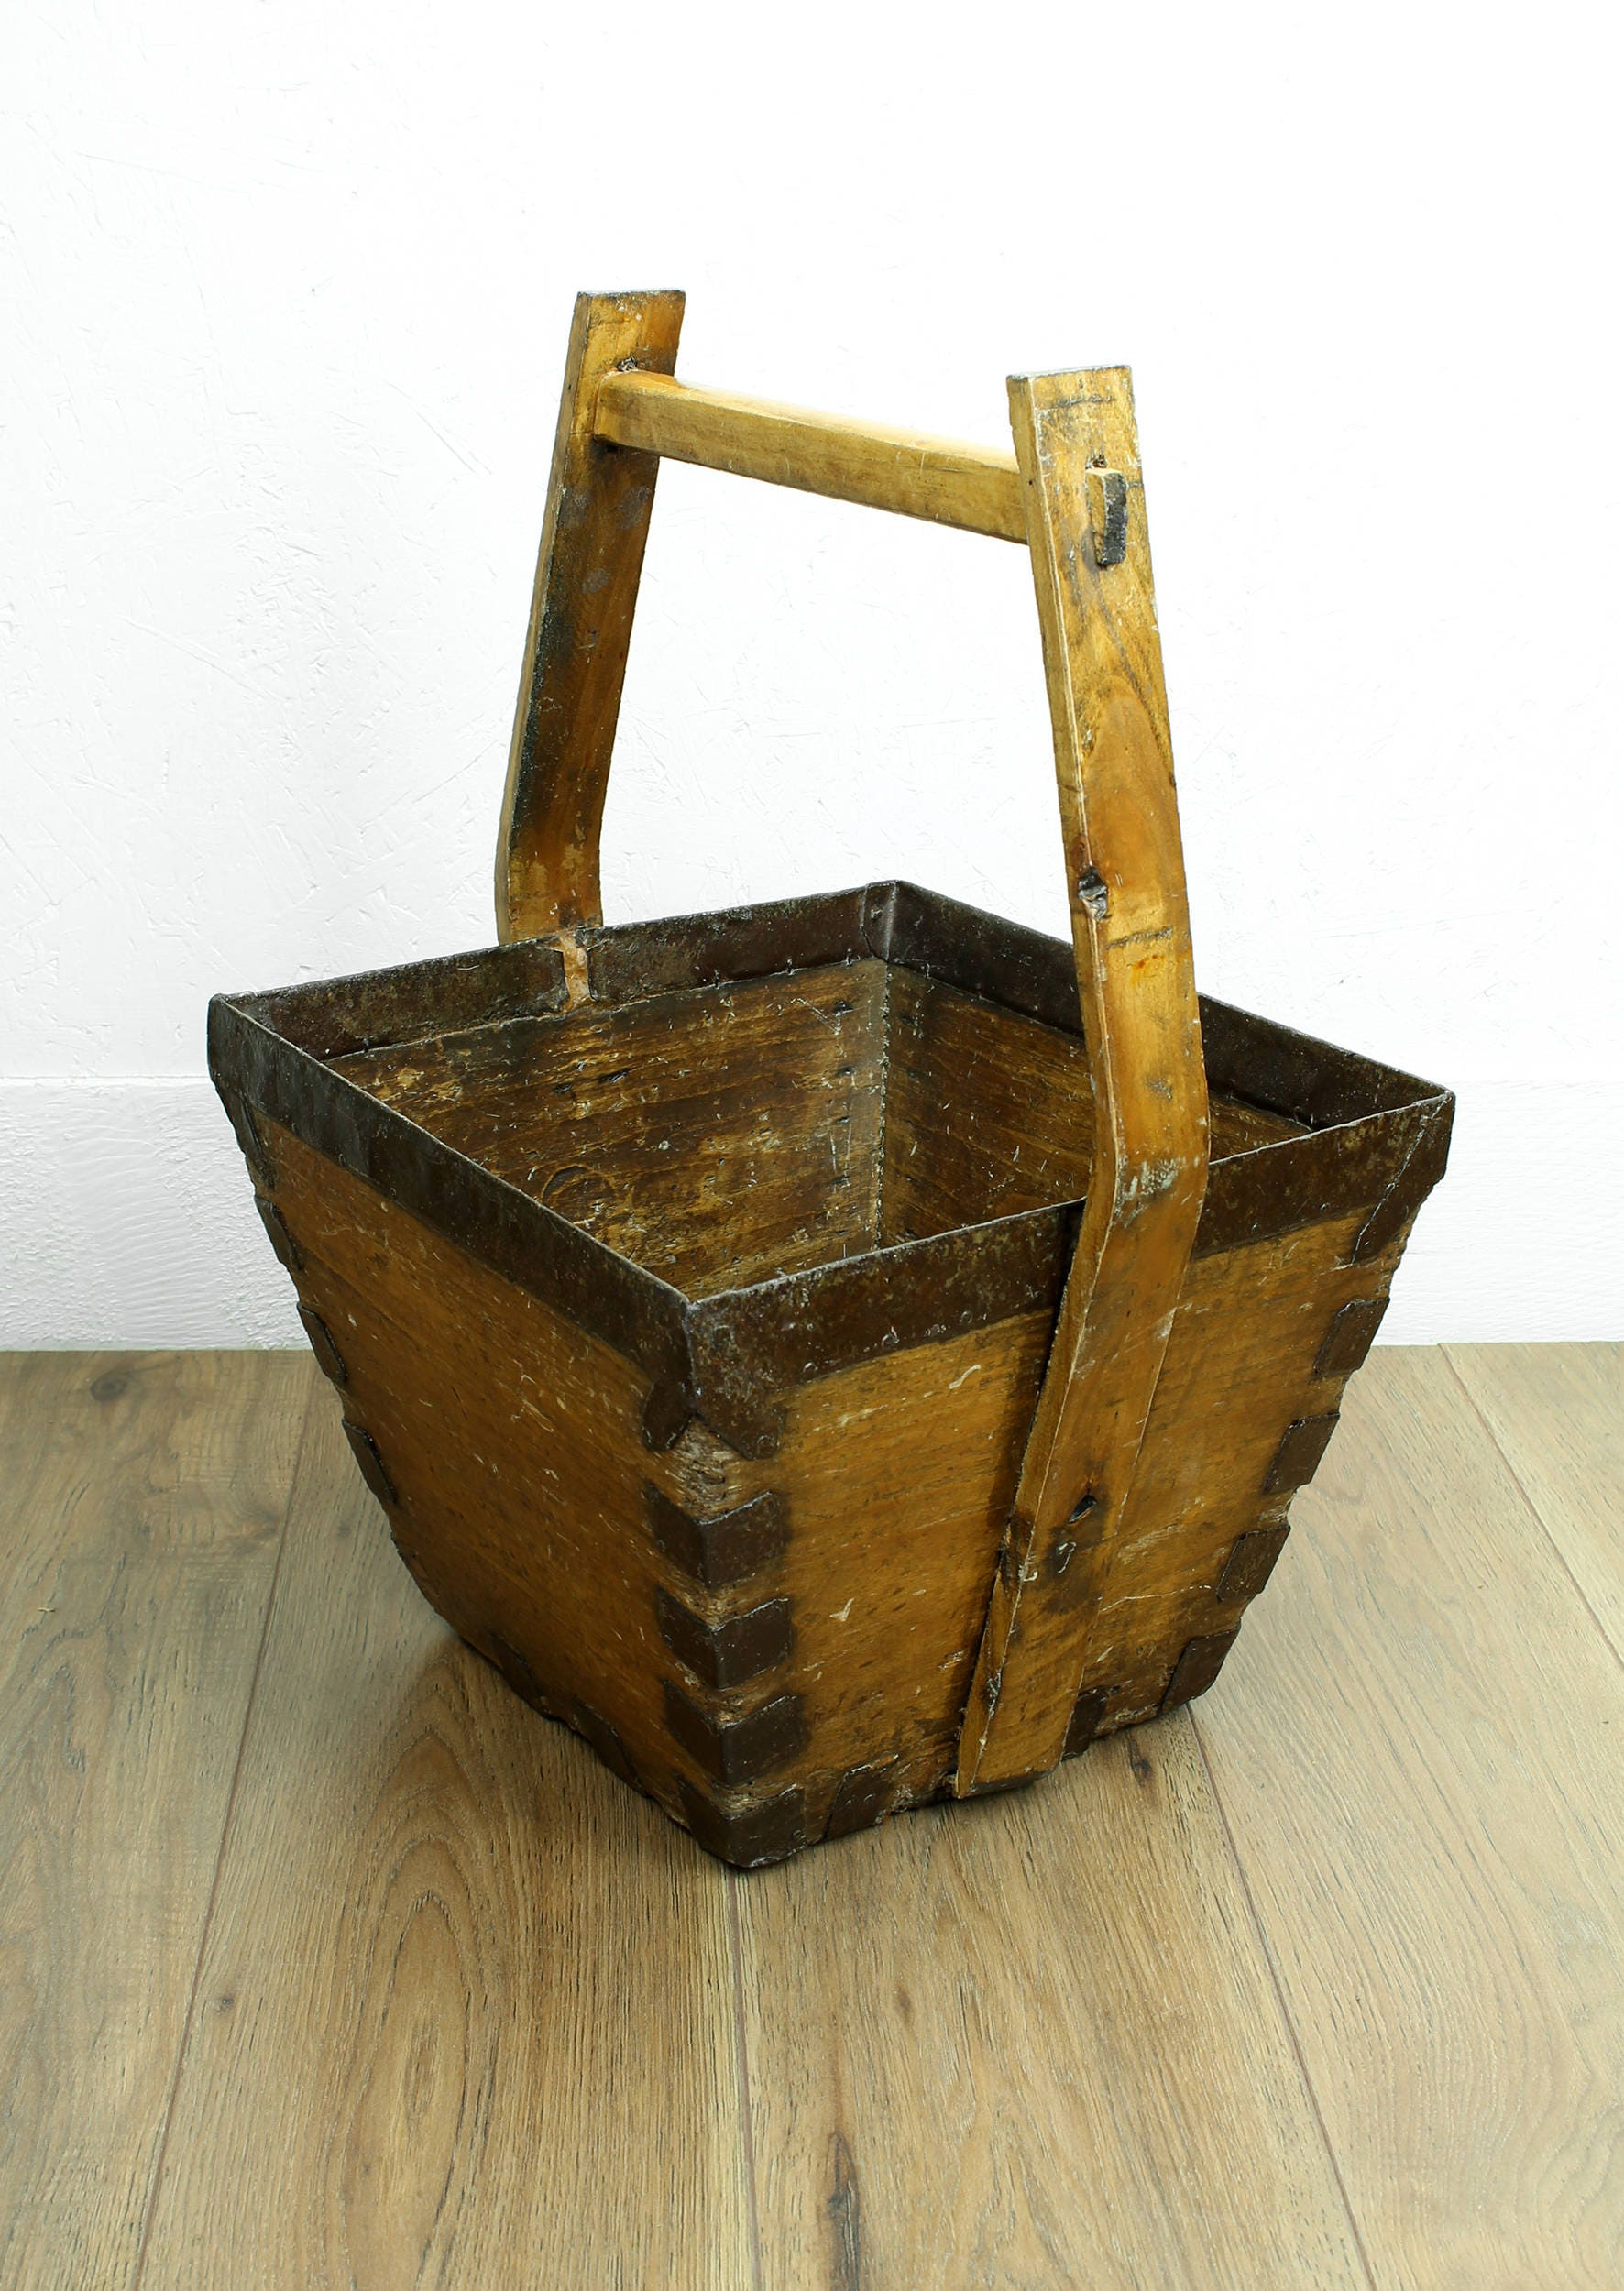 Vintage wooden carrier  wooden bucket  wooden log basket  wooden grain carrier  vintage furniture  rustic furniture